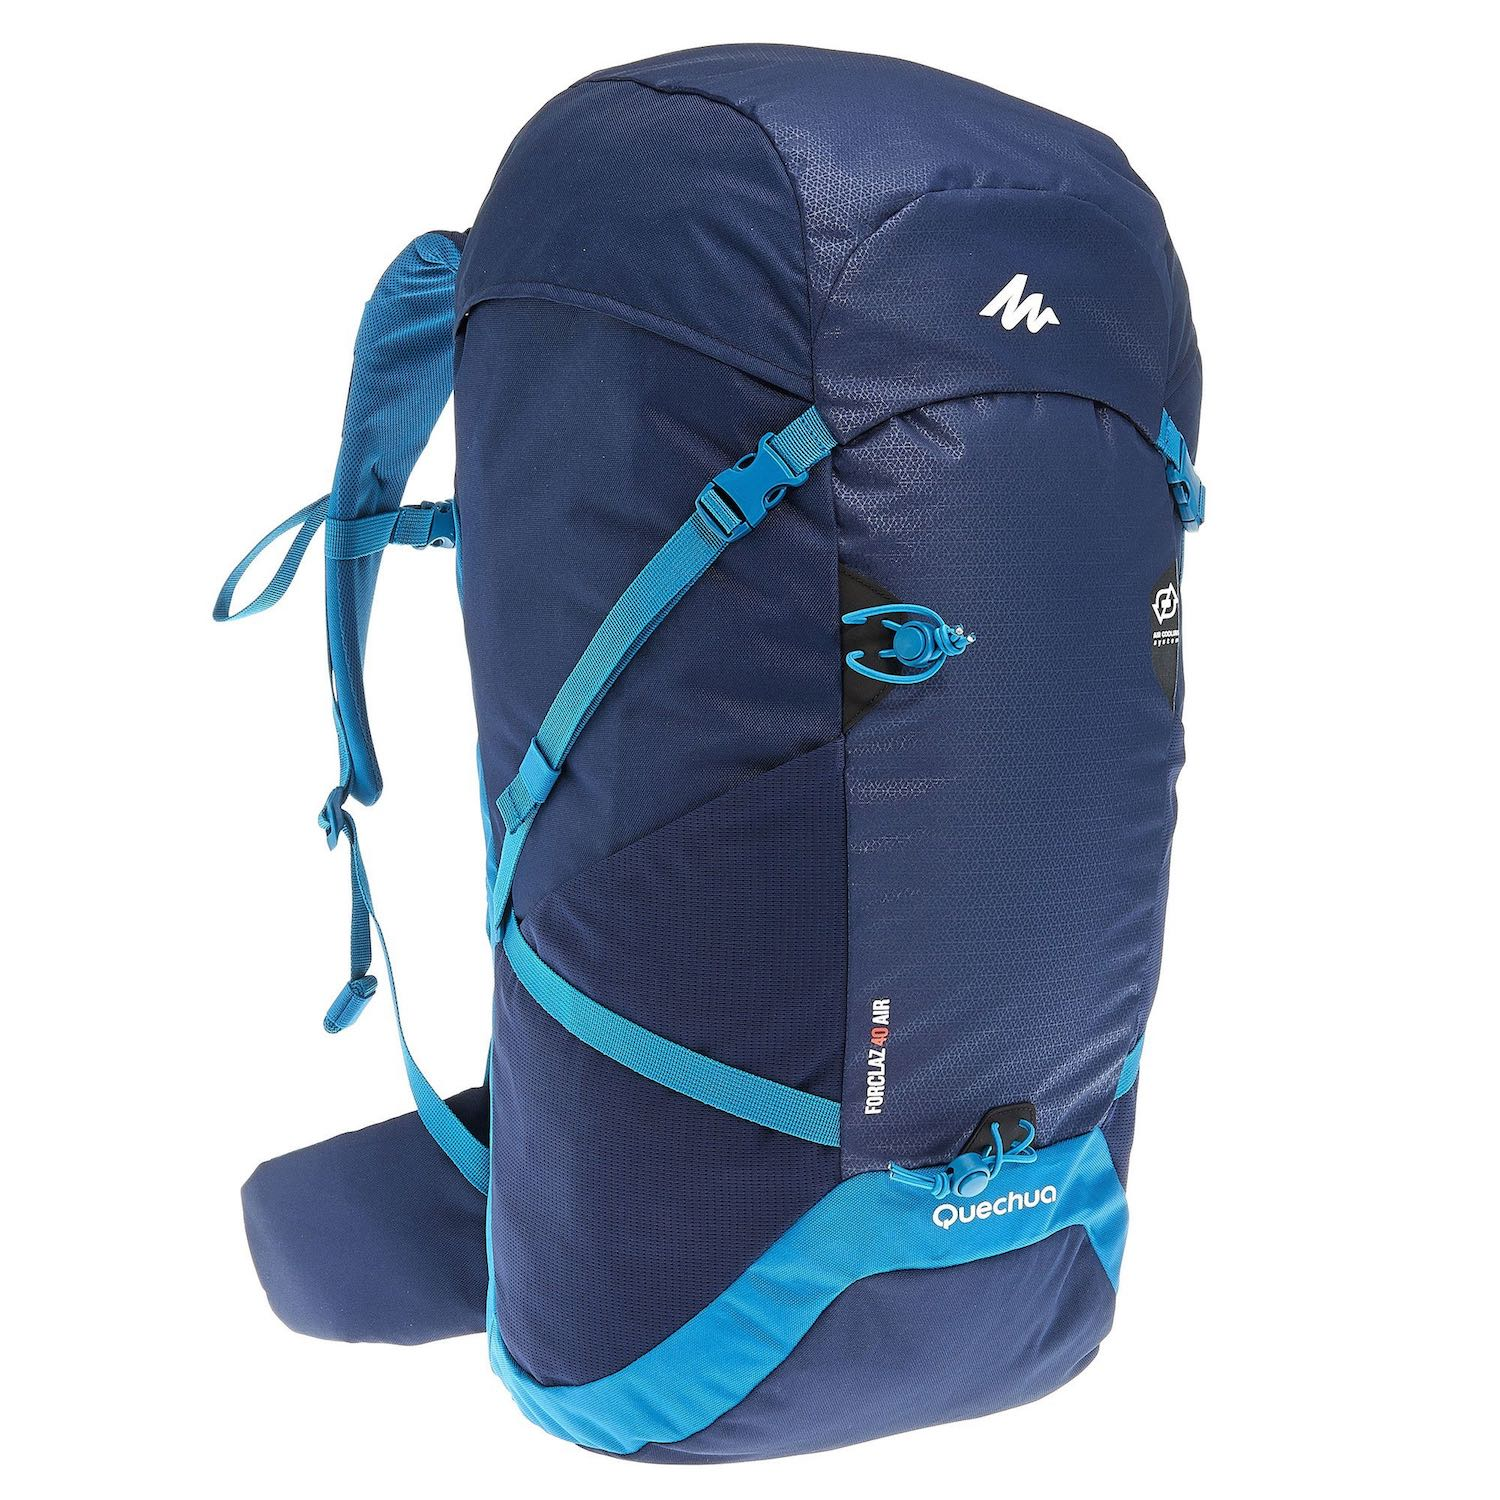 A lightweight backpack should weigh in under one kilo.